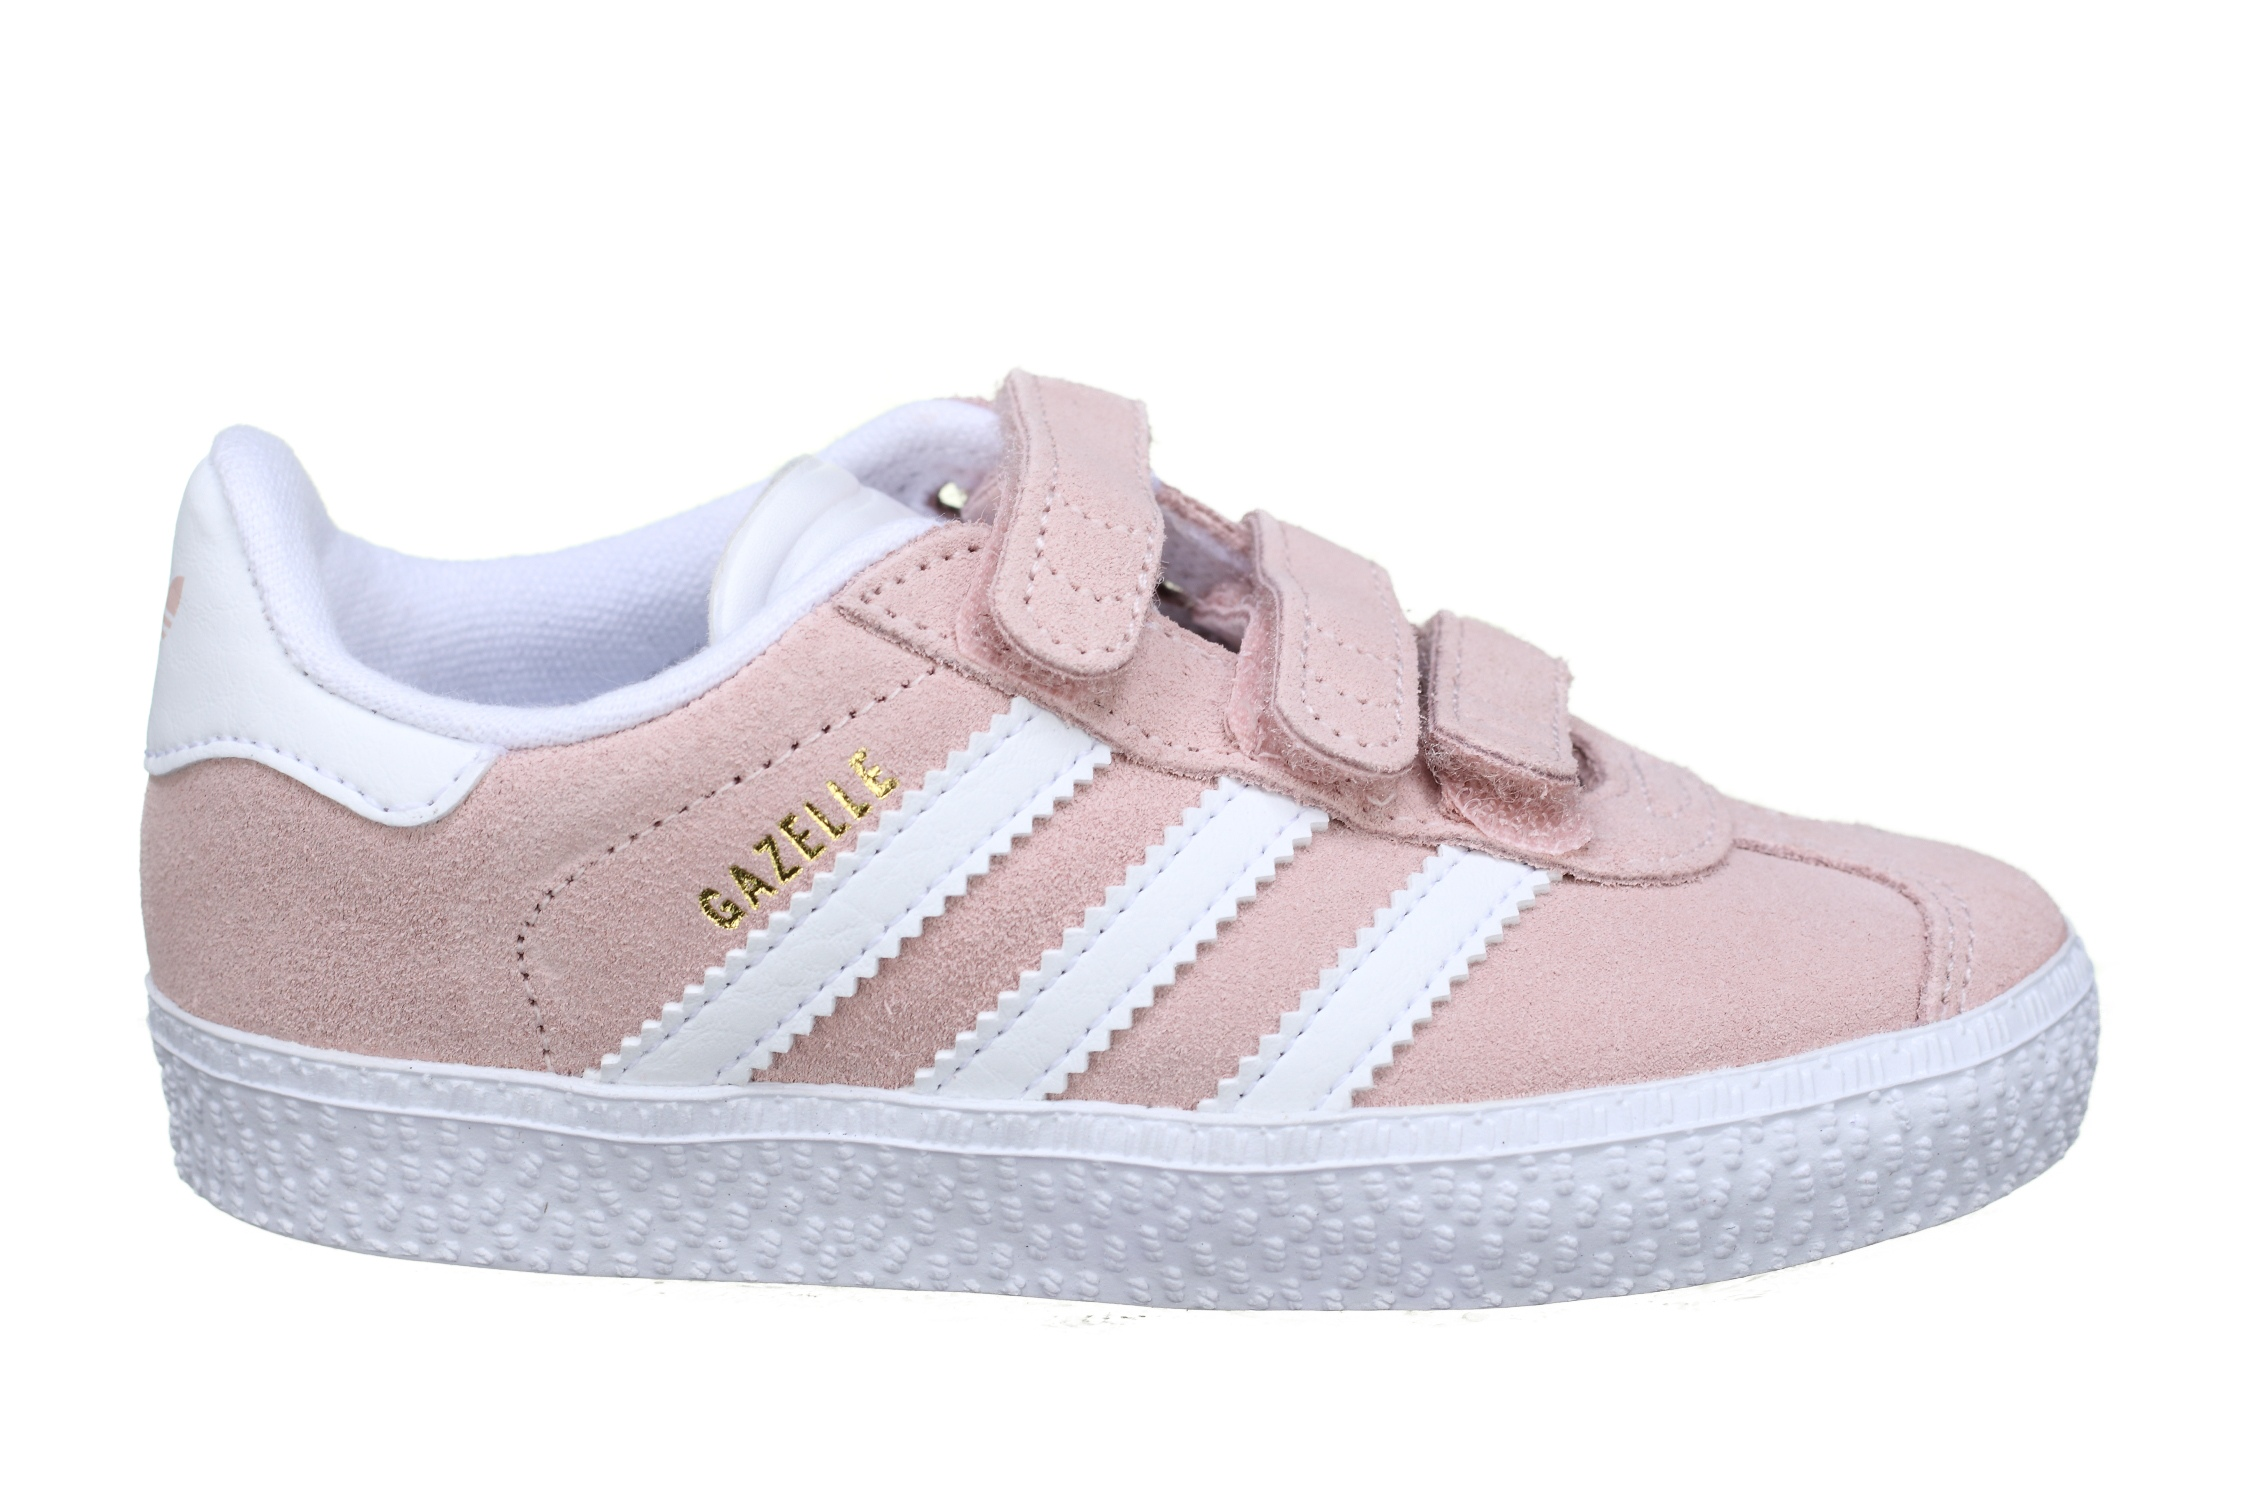 Basket garçon Adidas Gazelle Cf I Ah2229 Rose - Leader Mode -